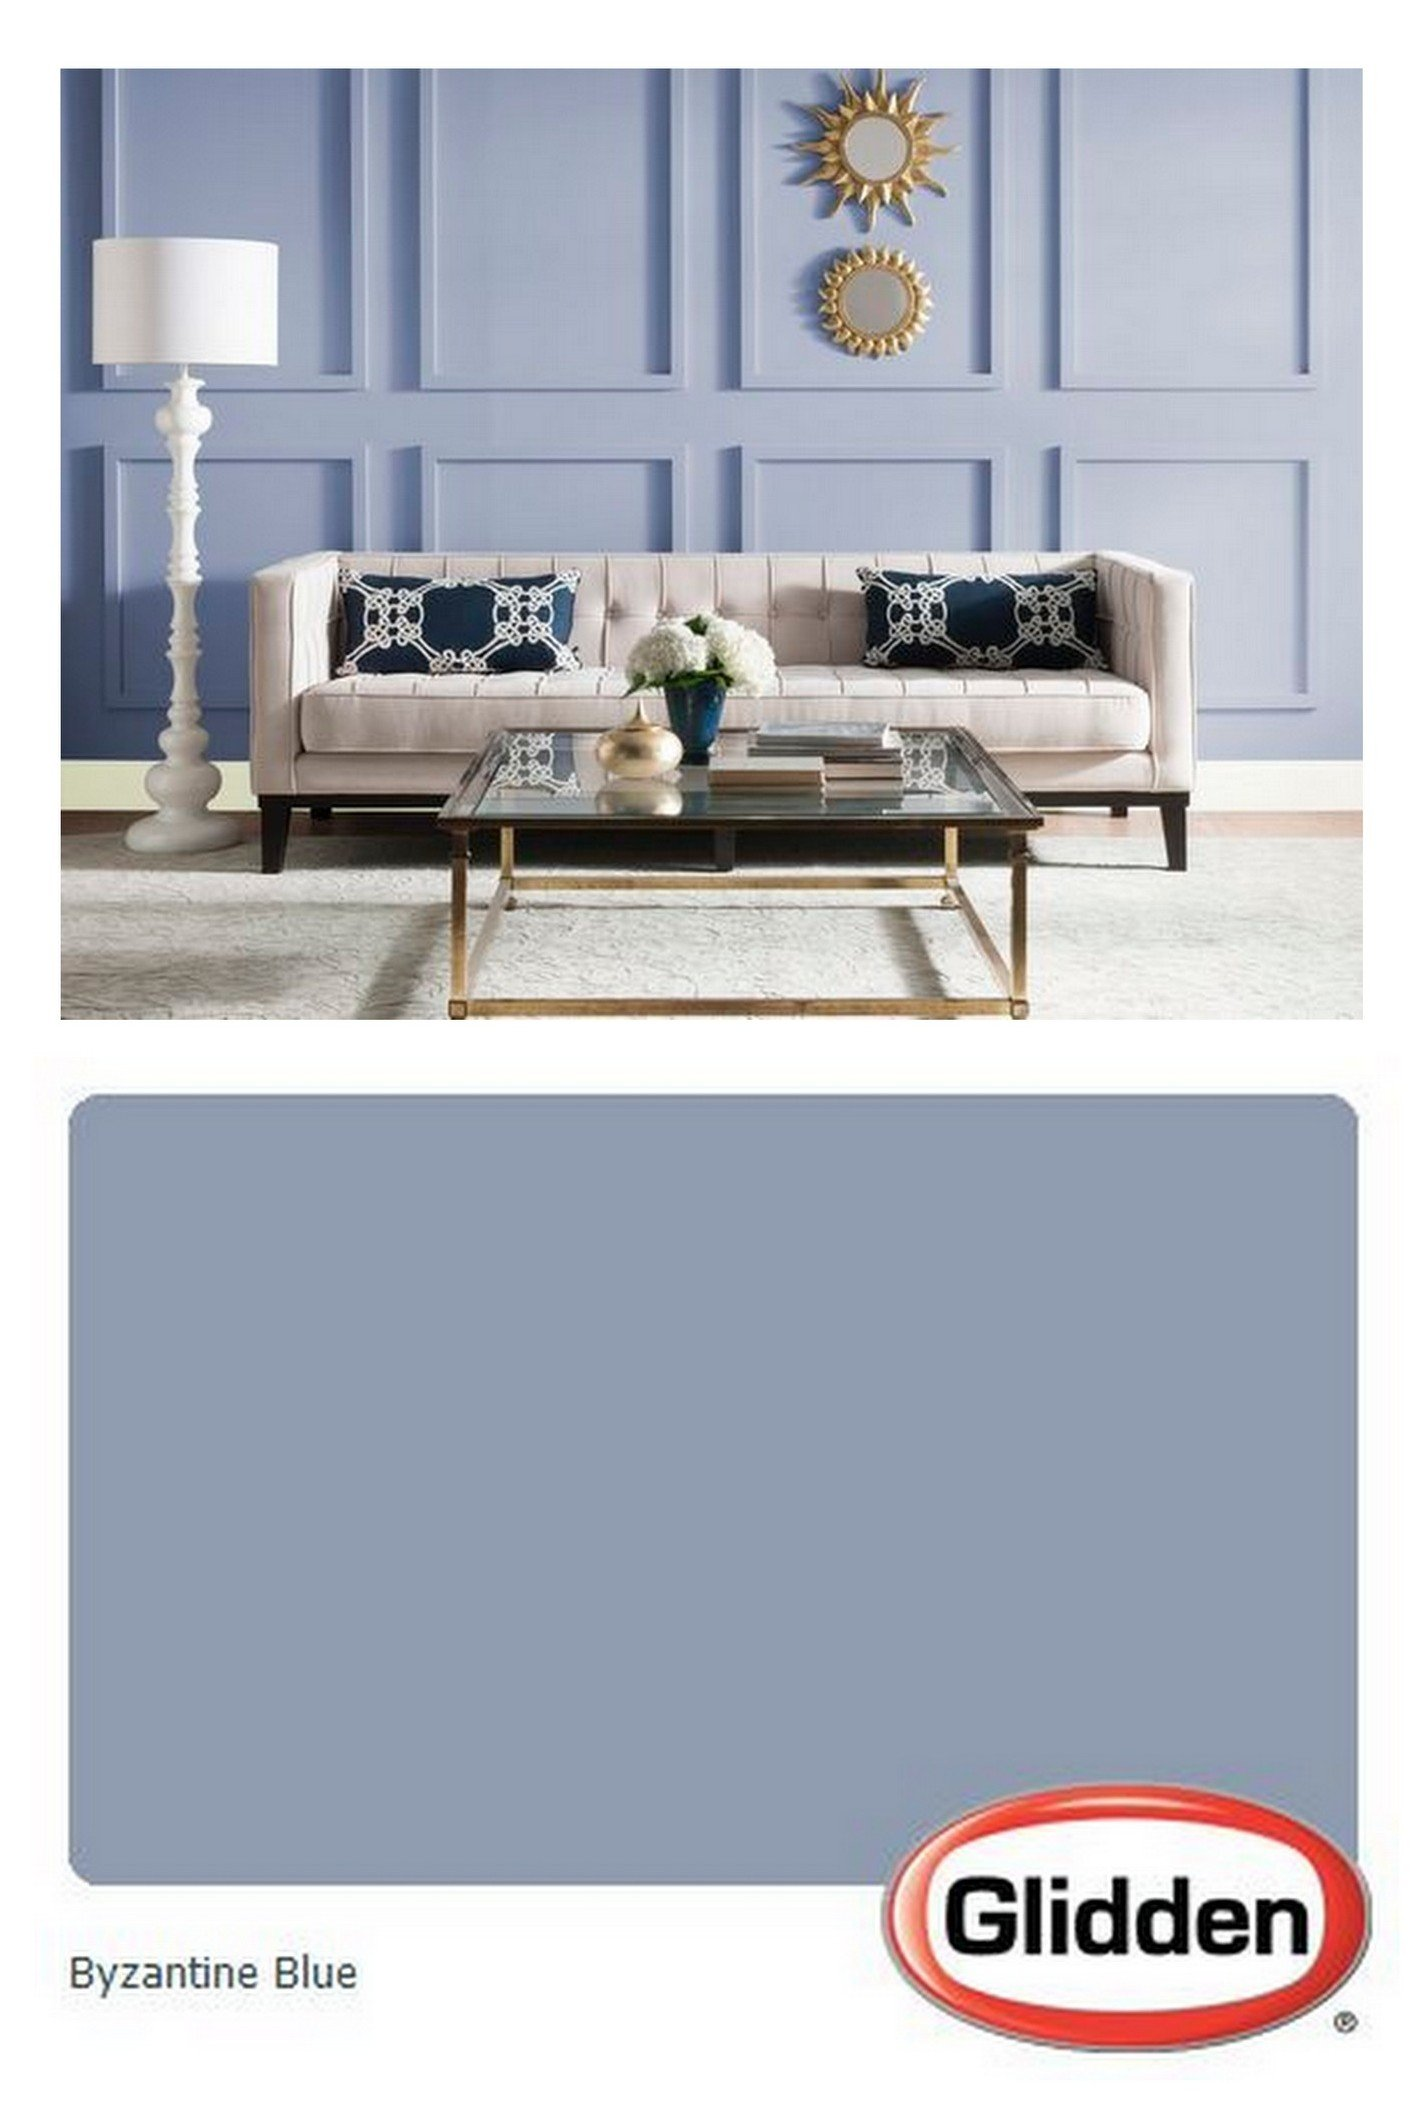 Glidden's 2017 Color of the Year is Byzantine Blue